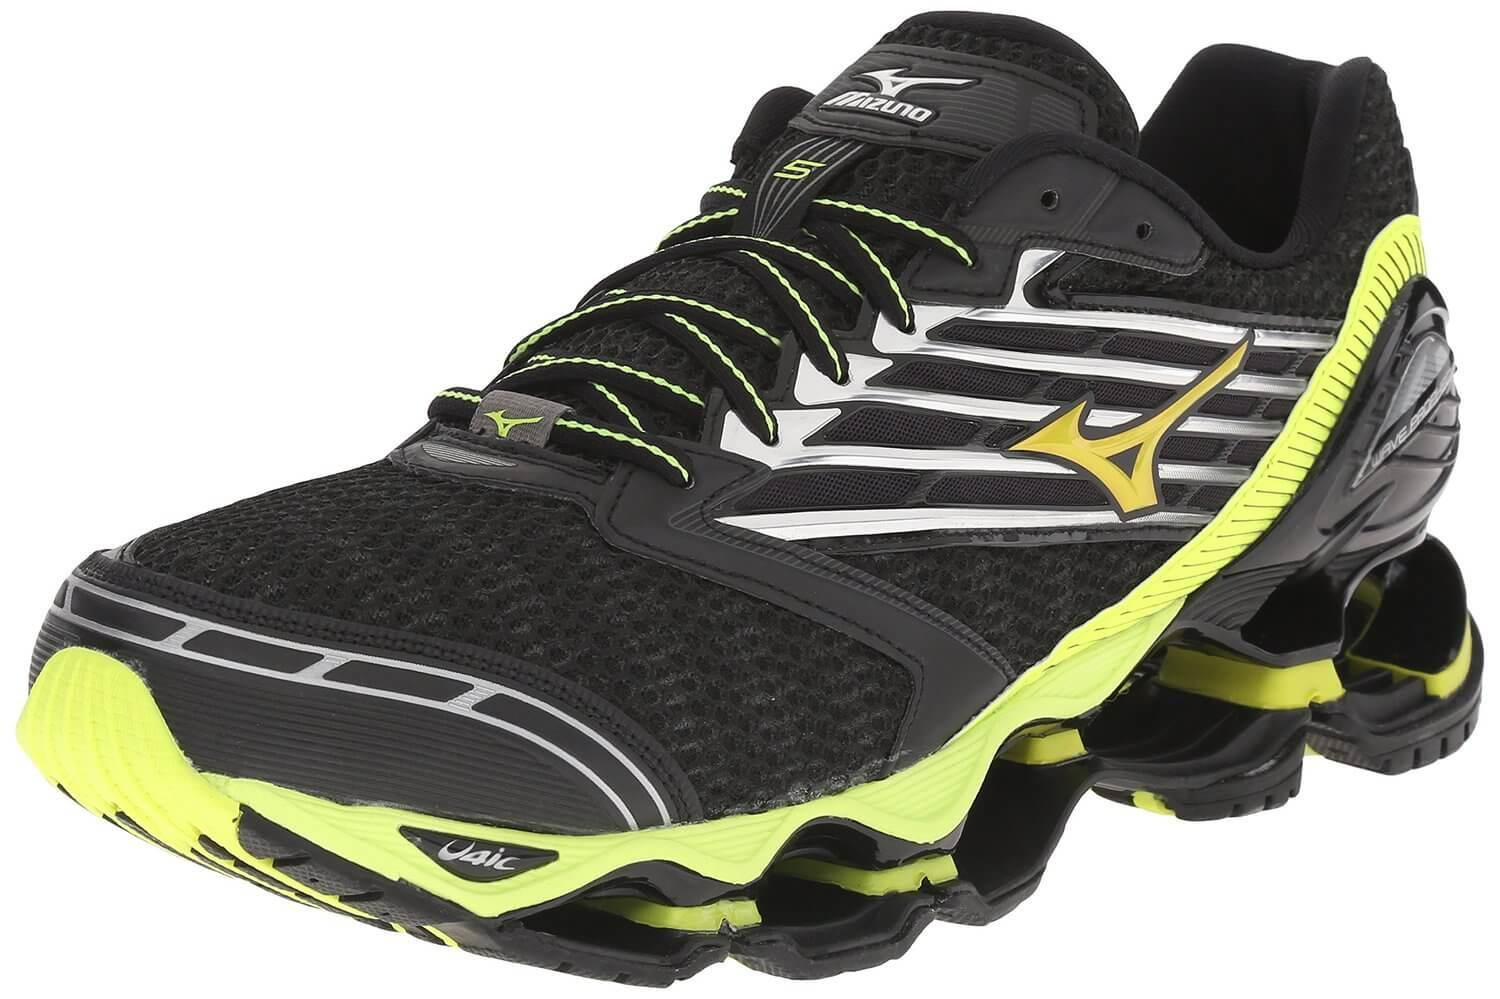 15df4df03901 Mizuno Wave Prophecy 5 - To Buy or Not in June 2019?